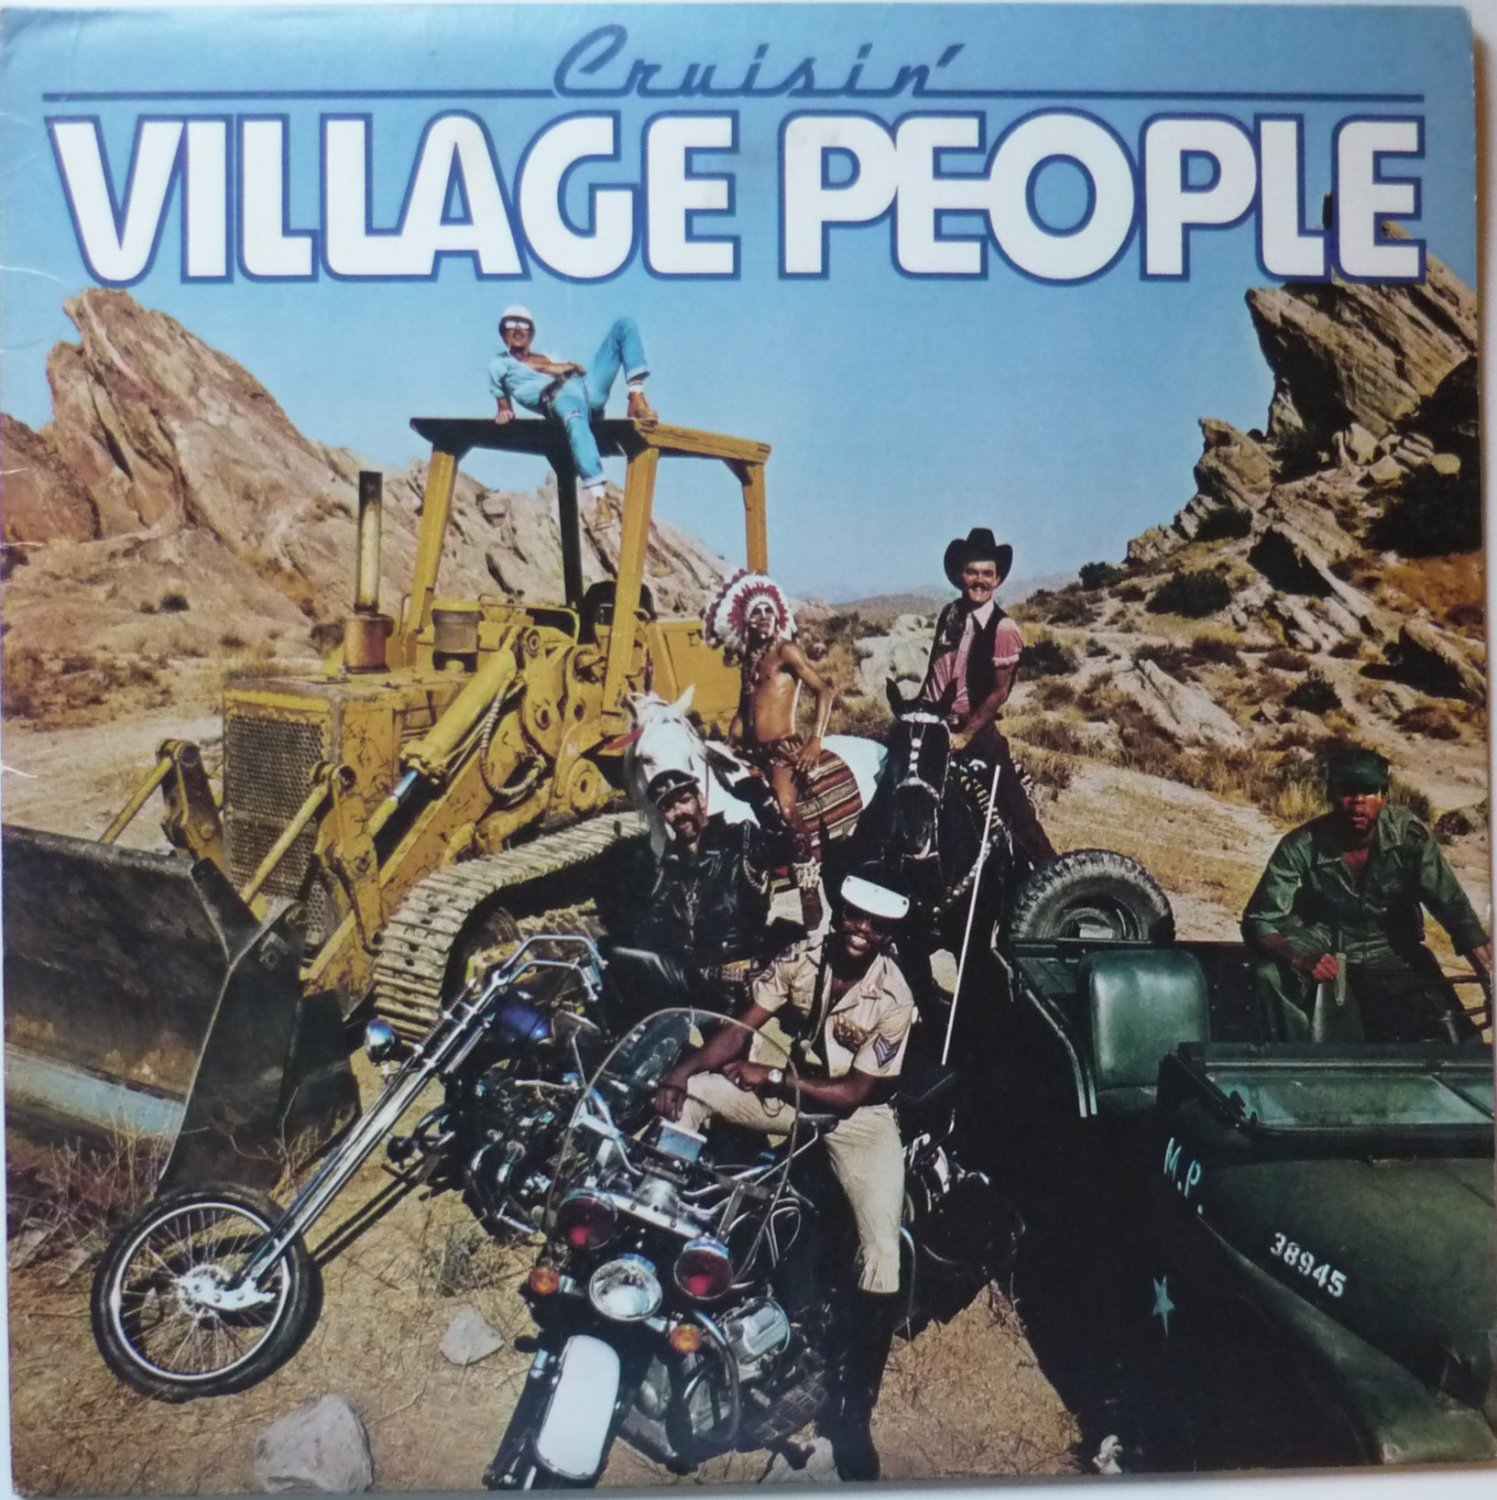 Cruisin lp by The Village People